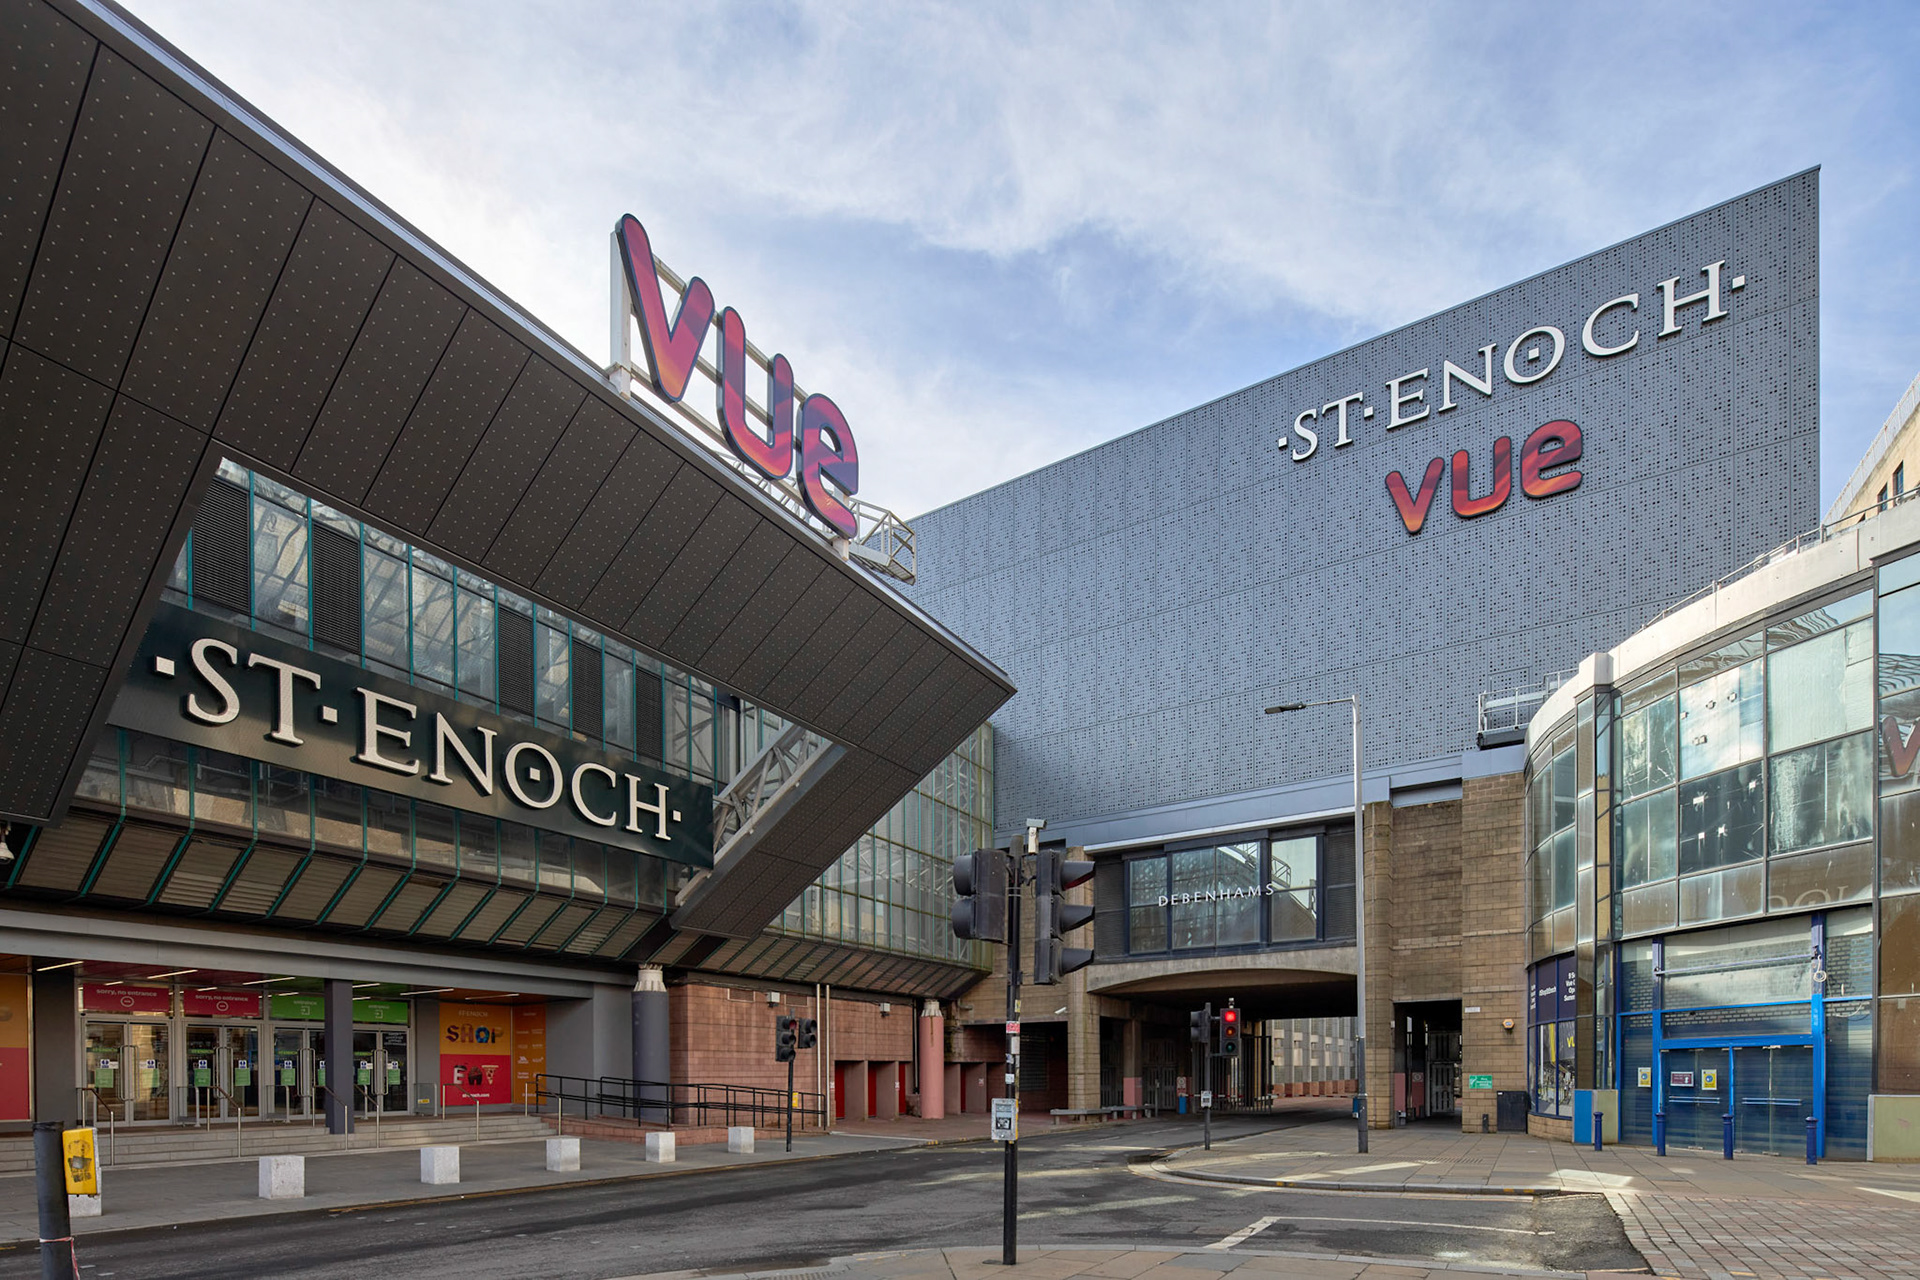 Architectural Photography St Enoch Glasgow Vue cinema roof side entrance